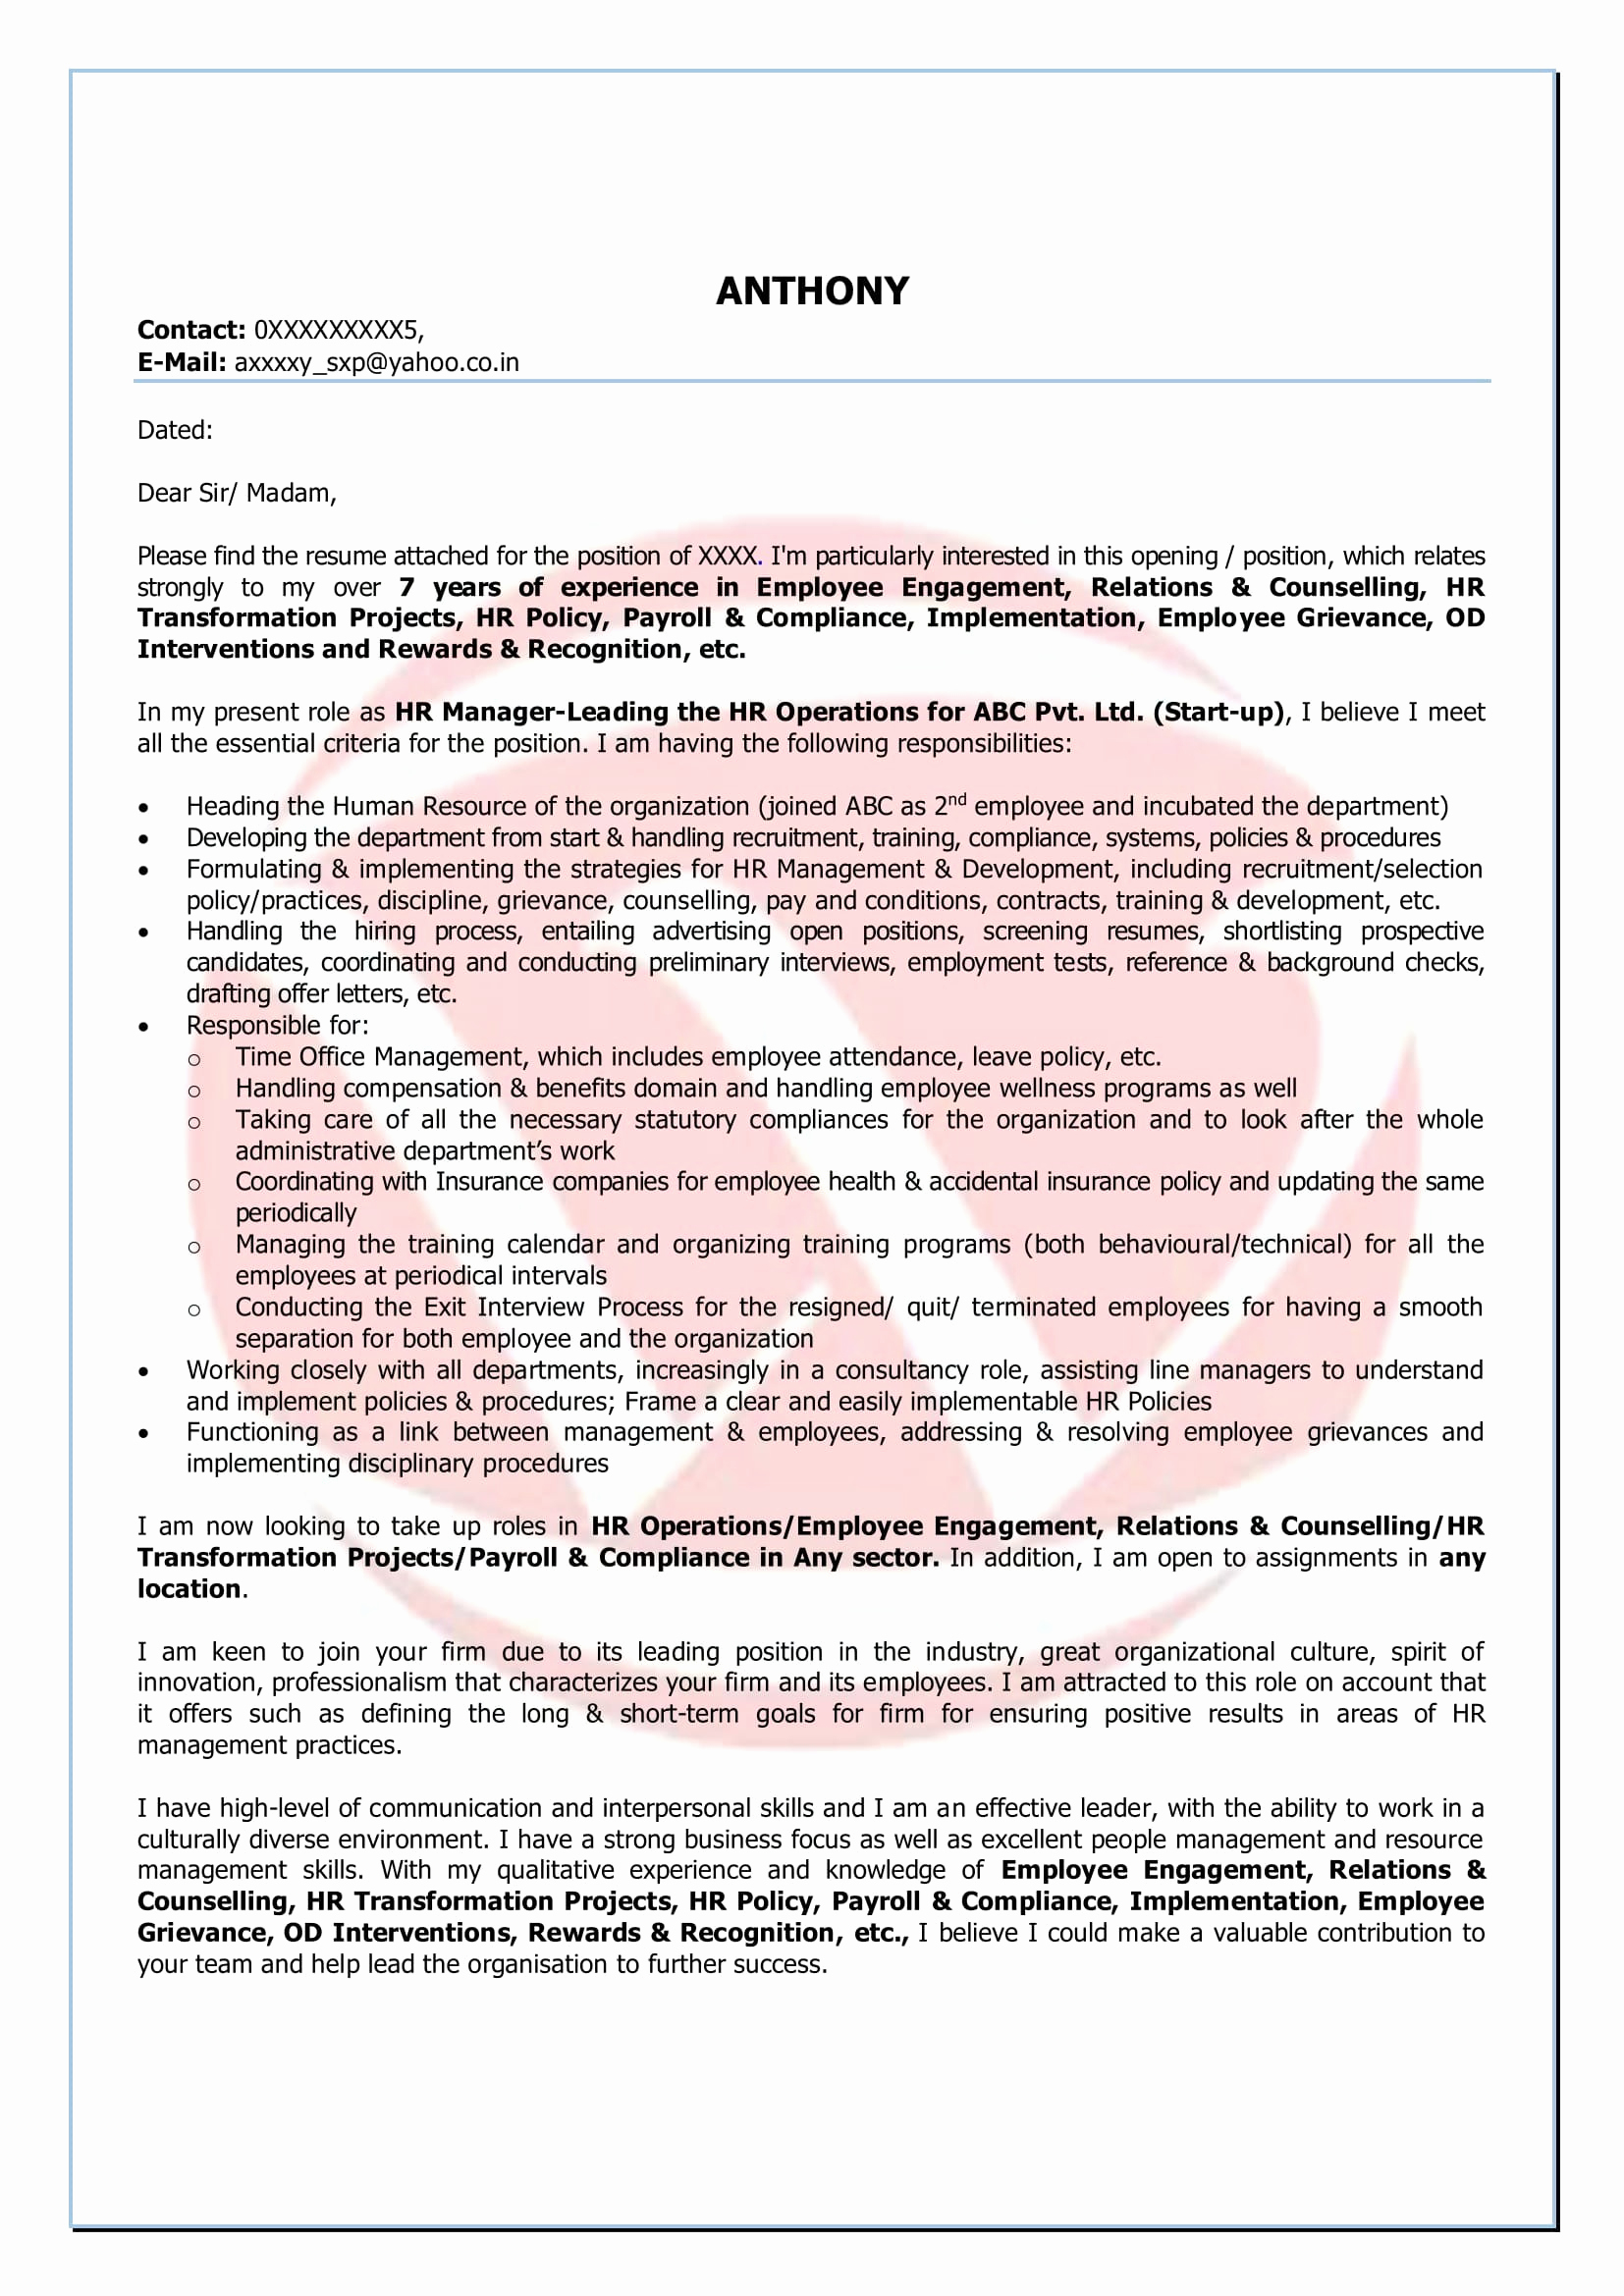 Personal Reference Letter Template - Personal Letter Re Mendation Templates Beautiful Awesome